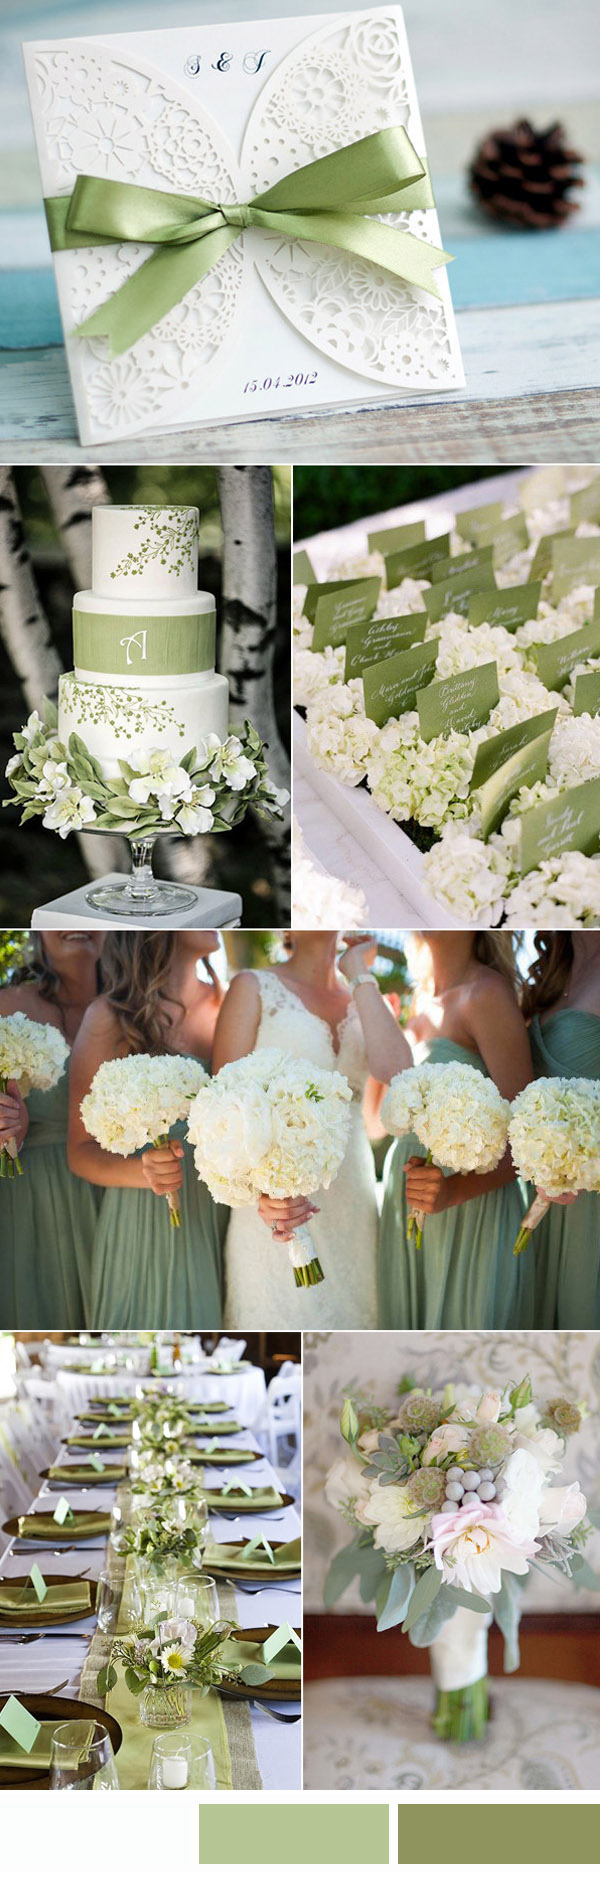 sage-green-and-white-wedding-color-ideas-and-laser-cut-wedding-invitations